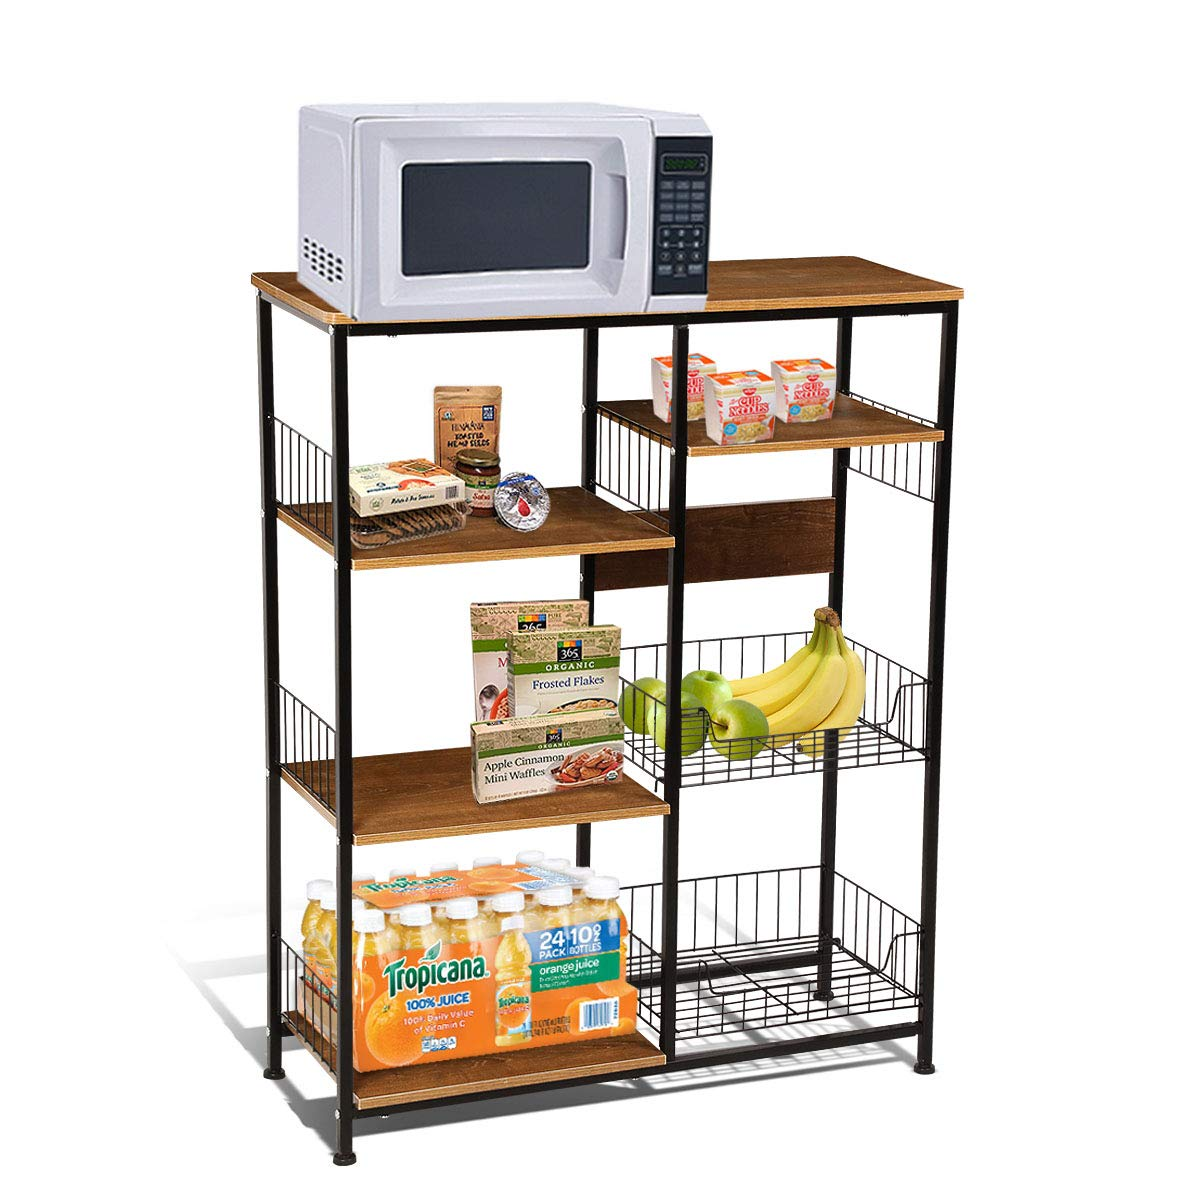 Magshion Baker's Rack Kitchen Island Dining Cabinet Basket Storage Shelves Organizer Wood (Brown)